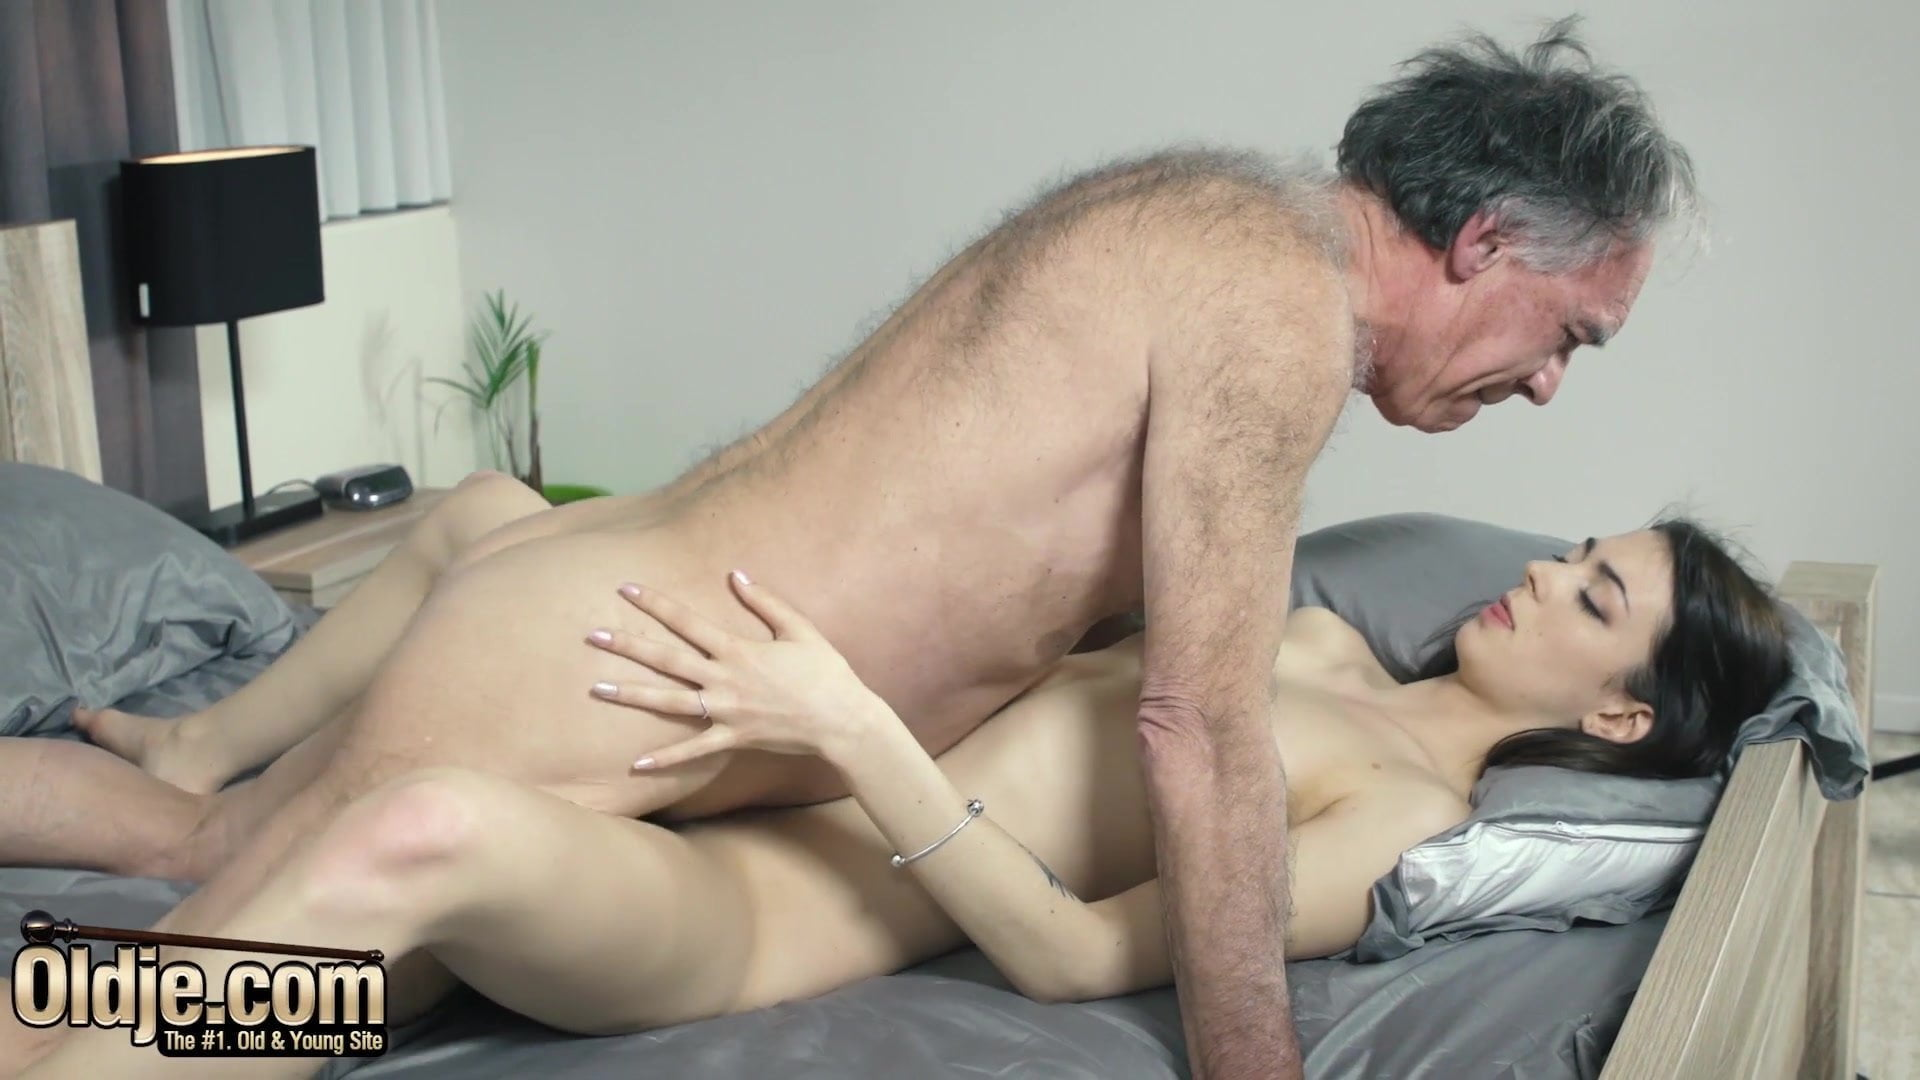 LBO - Dirty Minds - scene 1